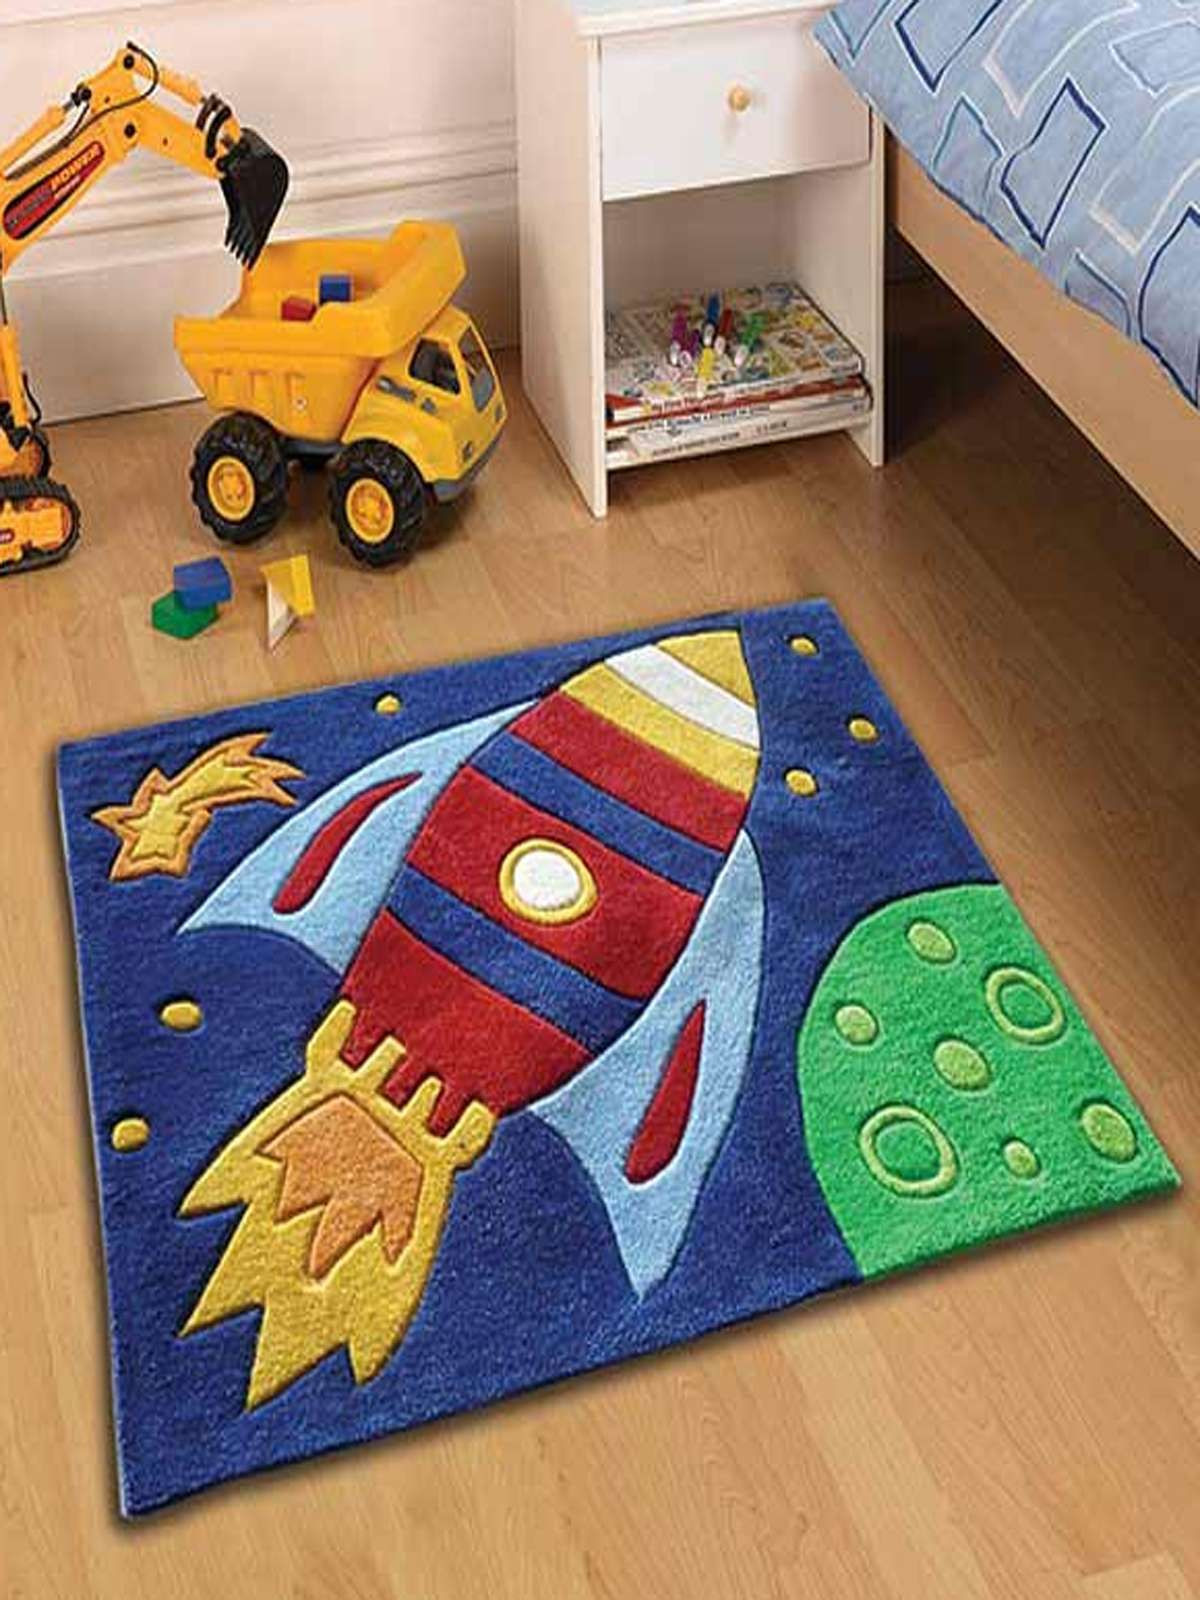 Carpet Designs for Kids Space Rocket Bedroom Rug Kids Bedroom